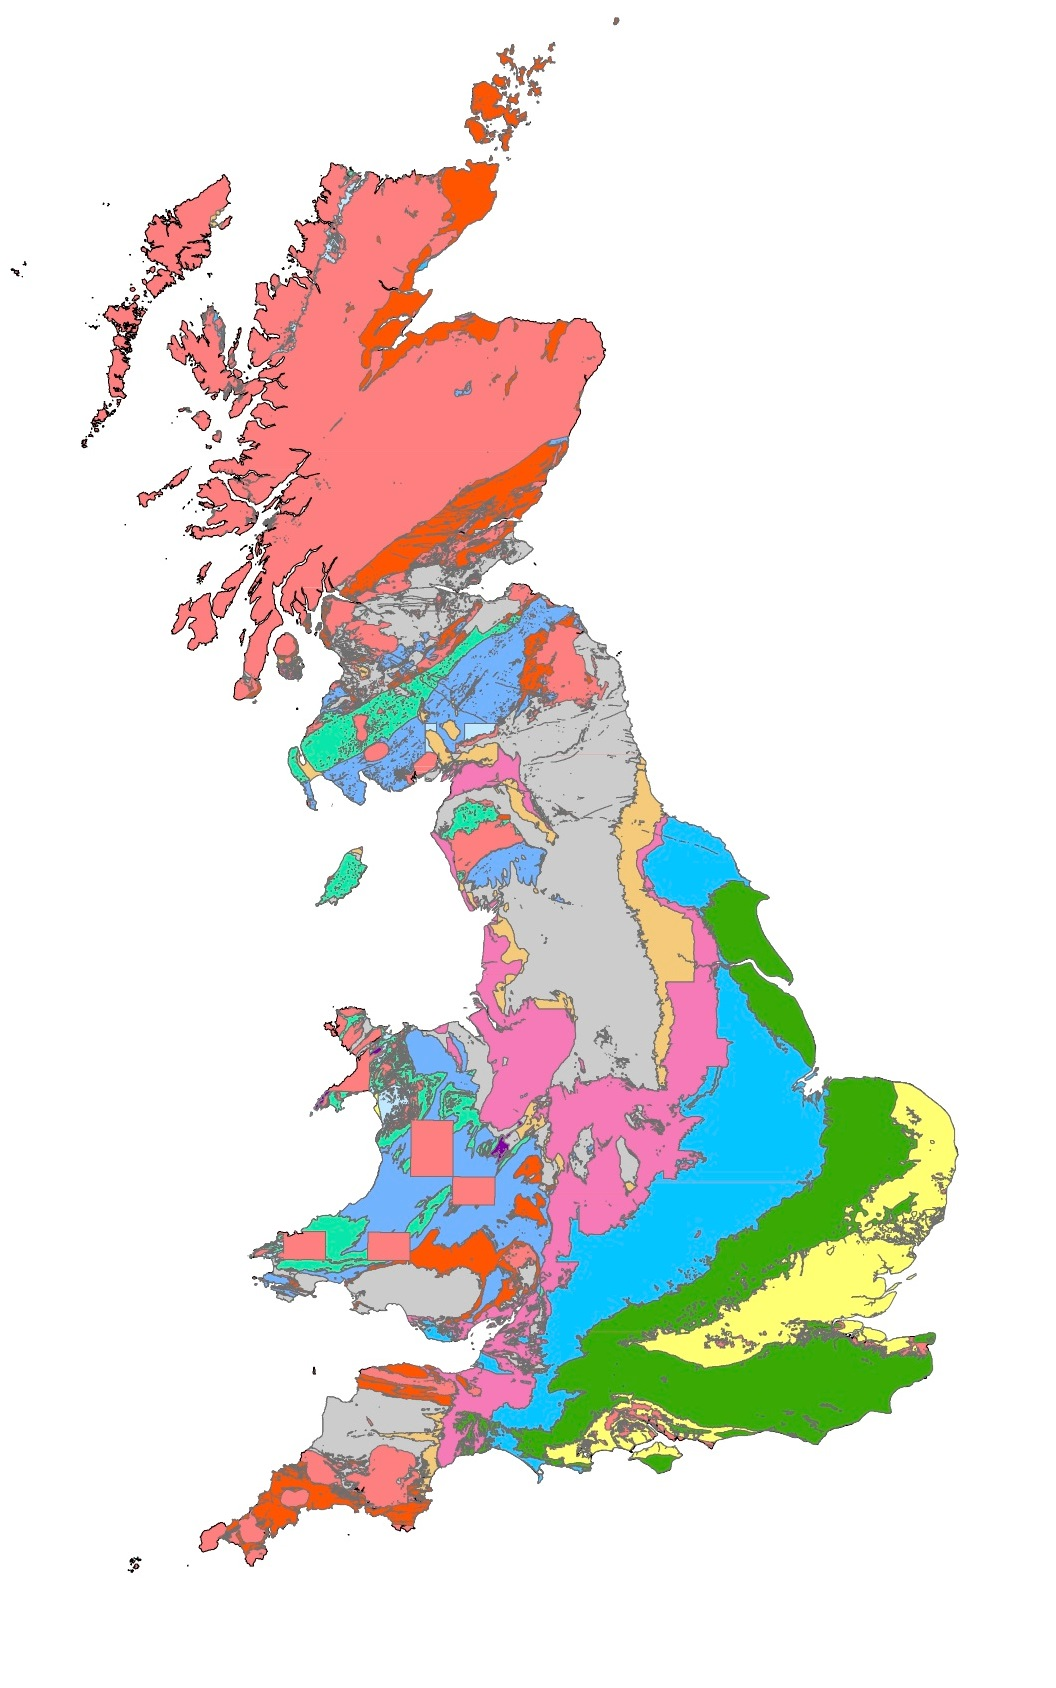 This map shows the geology of Great Britain spanning the past 550 million years. Image credit: Dr Alex Dunhill, University of Leeds